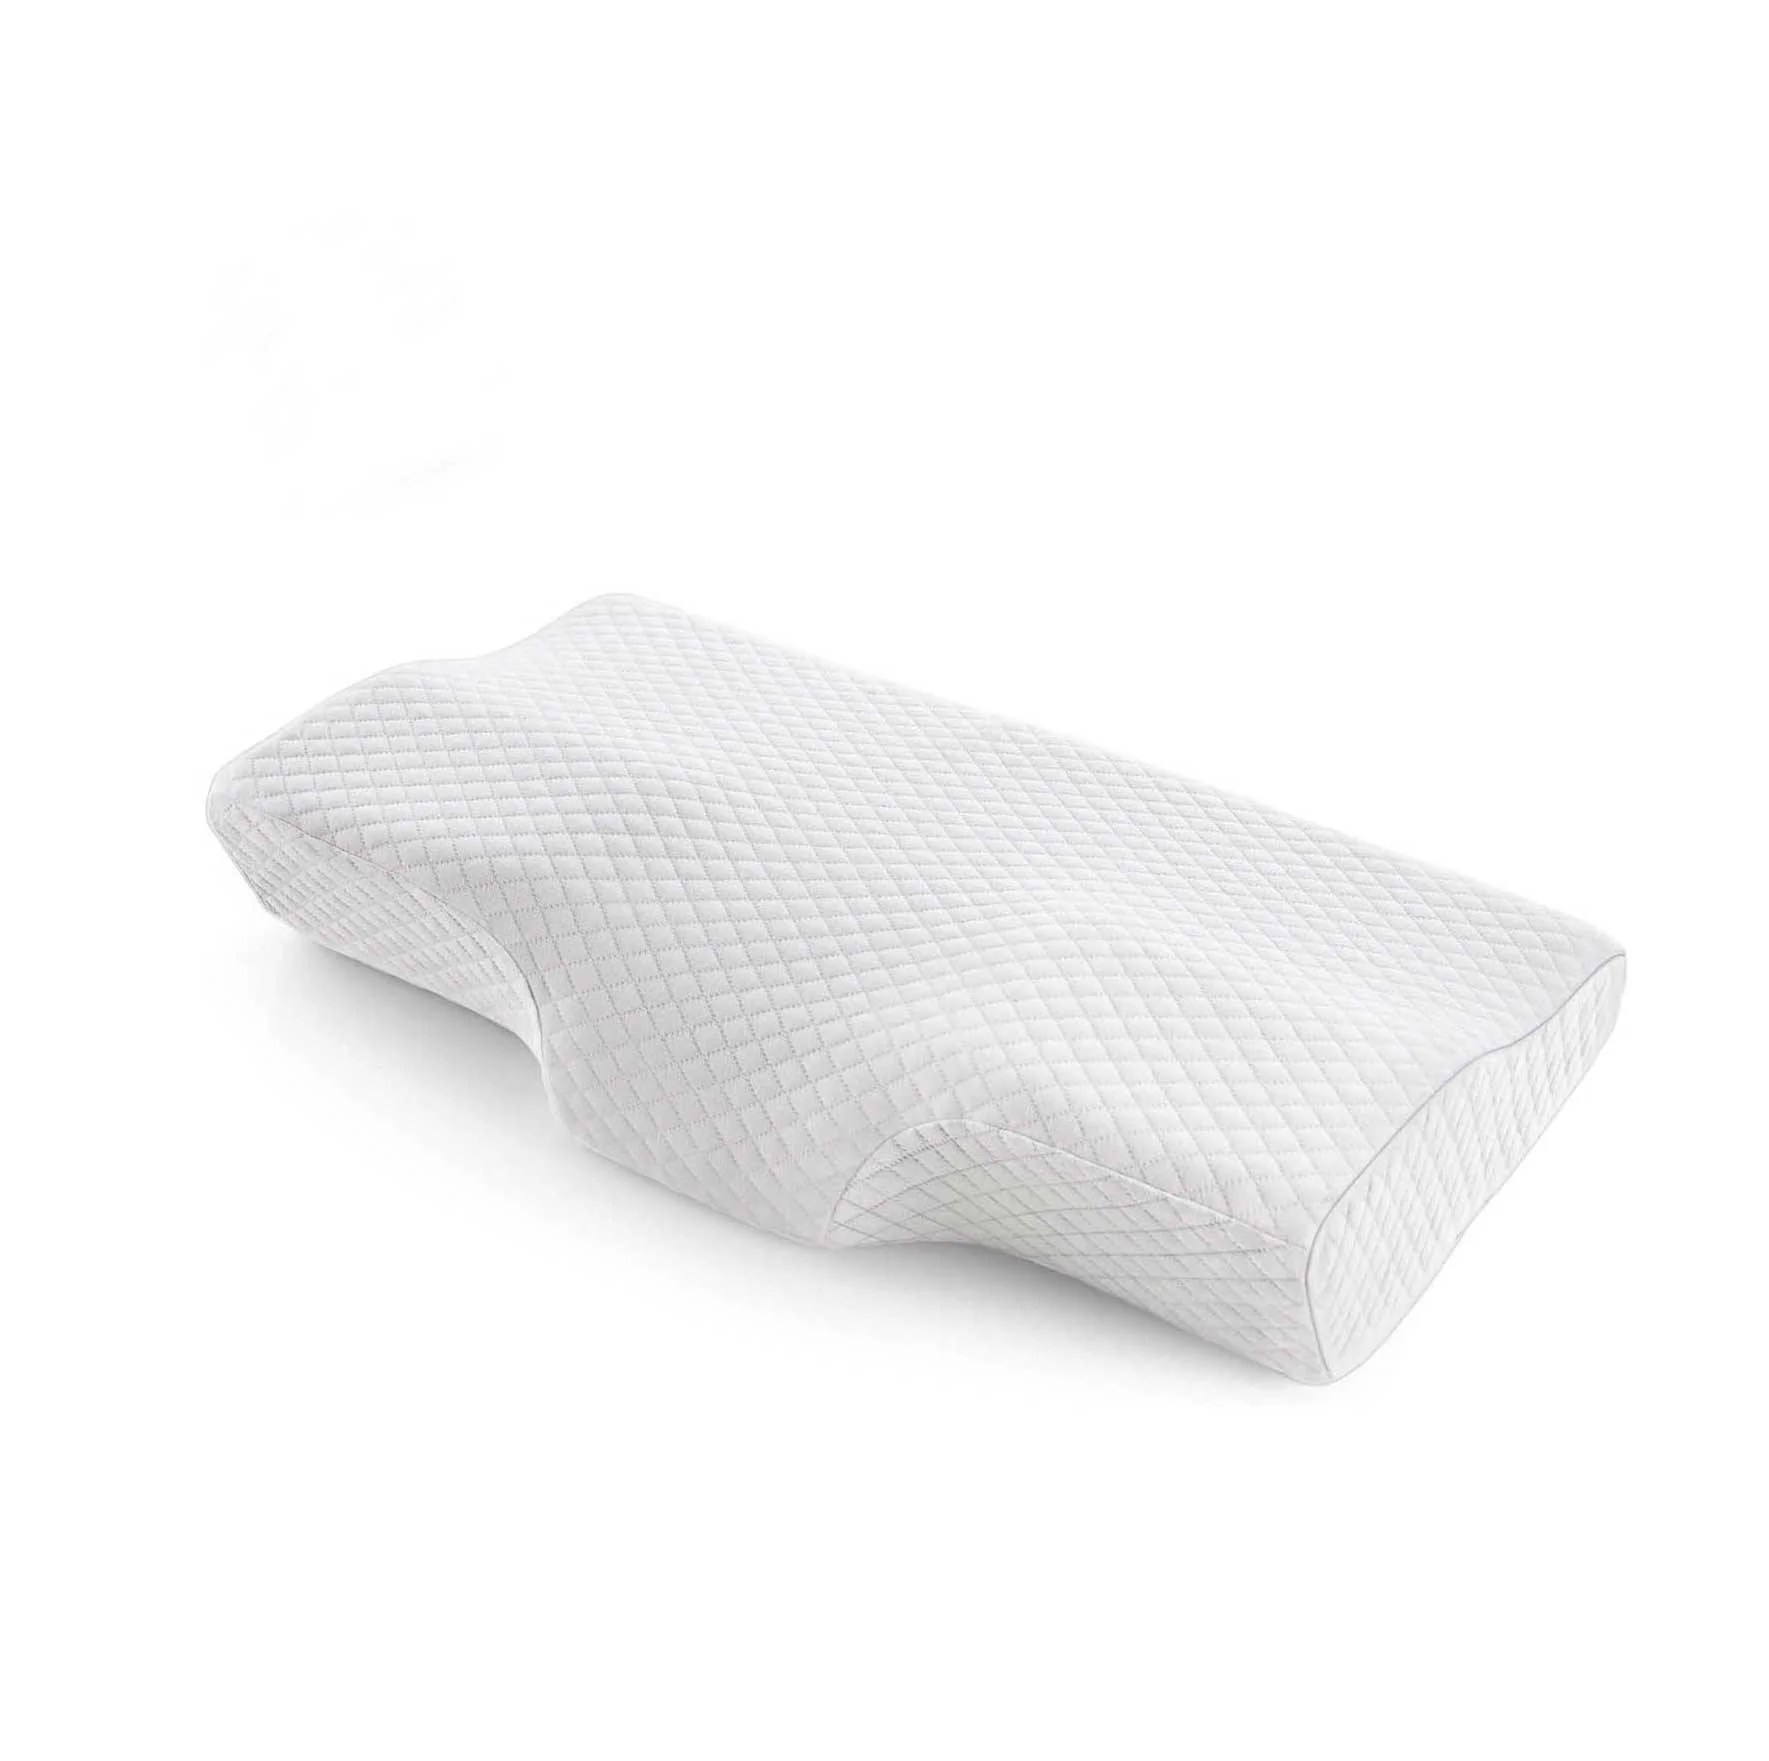 milemont memory foam pillow cervical pillow for neck pain orthopedic contour pillow support for back stomach side sleepers